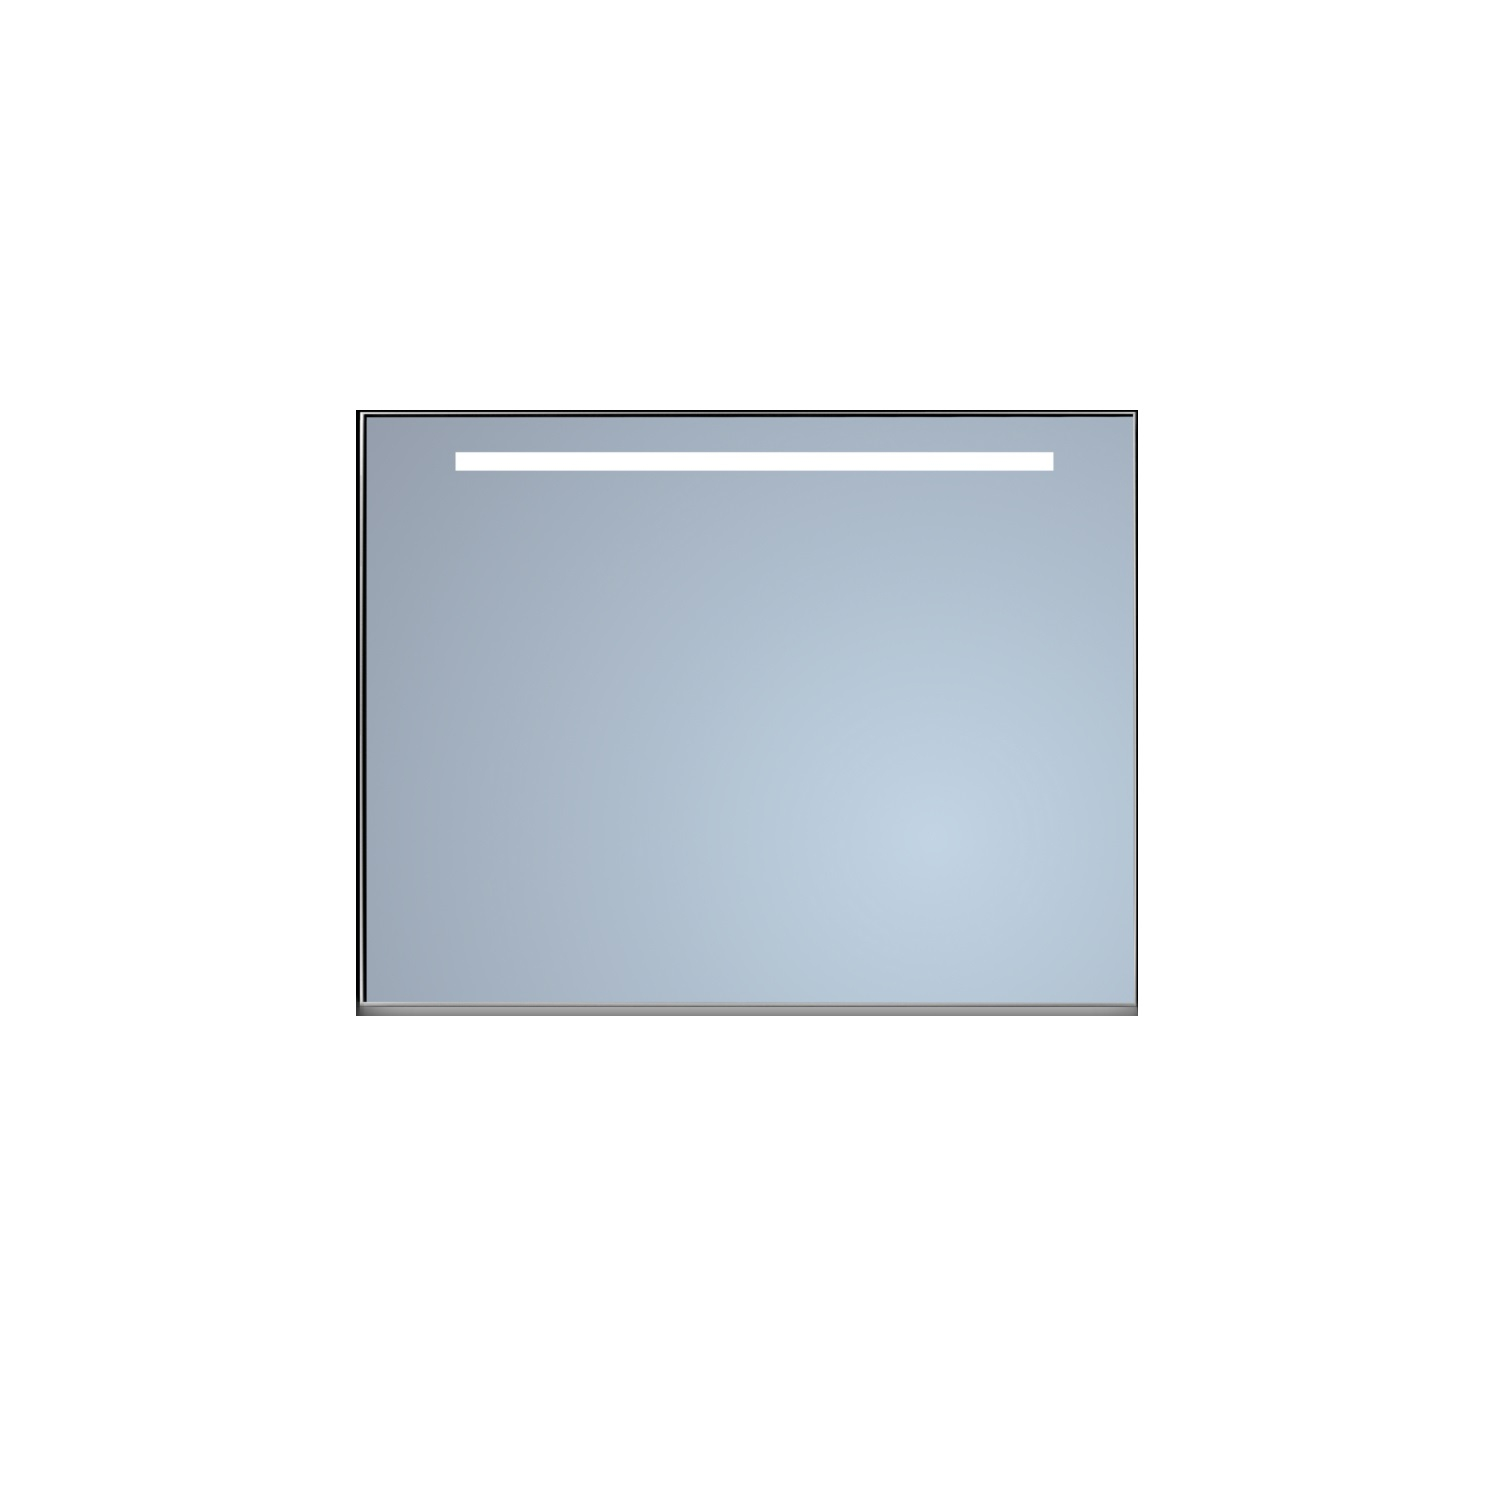 Badkamerspiegel Sanicare Q-Mirrors Ambiance en 'Cold White' LED-verlichting 70x80x3,5 Chroom Omlijsting